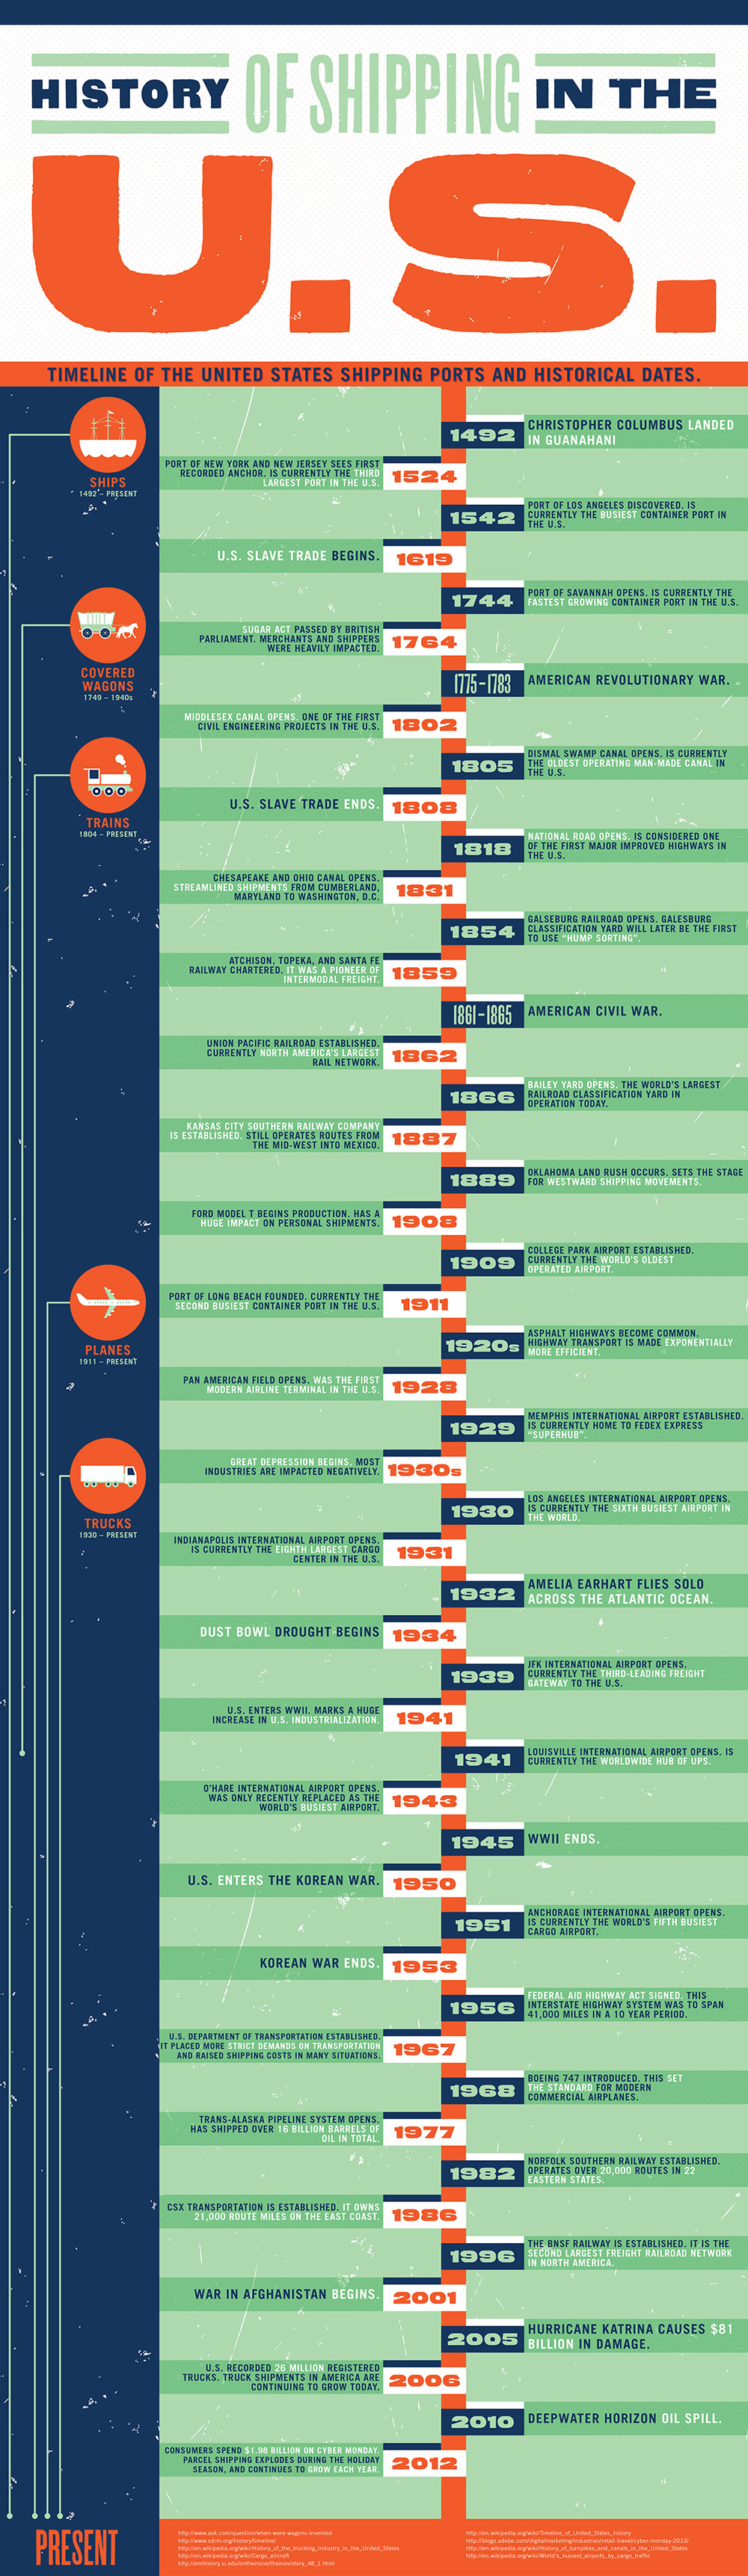 history-of-shipping-in-the-us